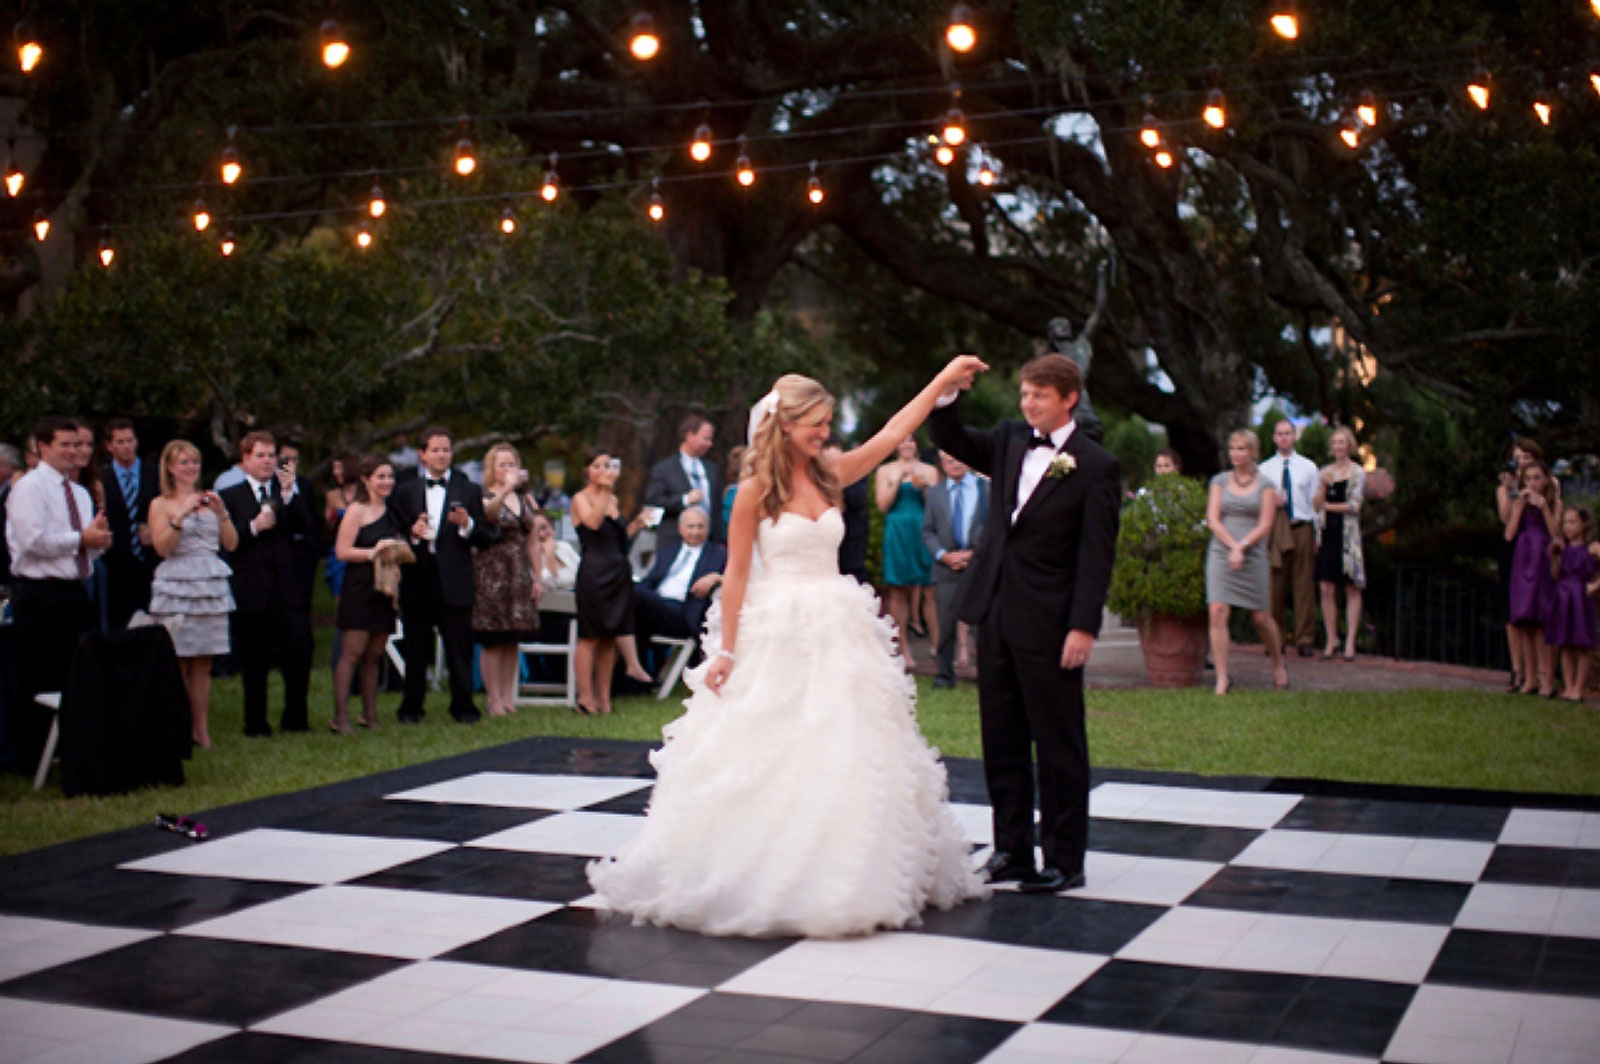 A classic checkered slate look dance floor complements this outdoor wedding.